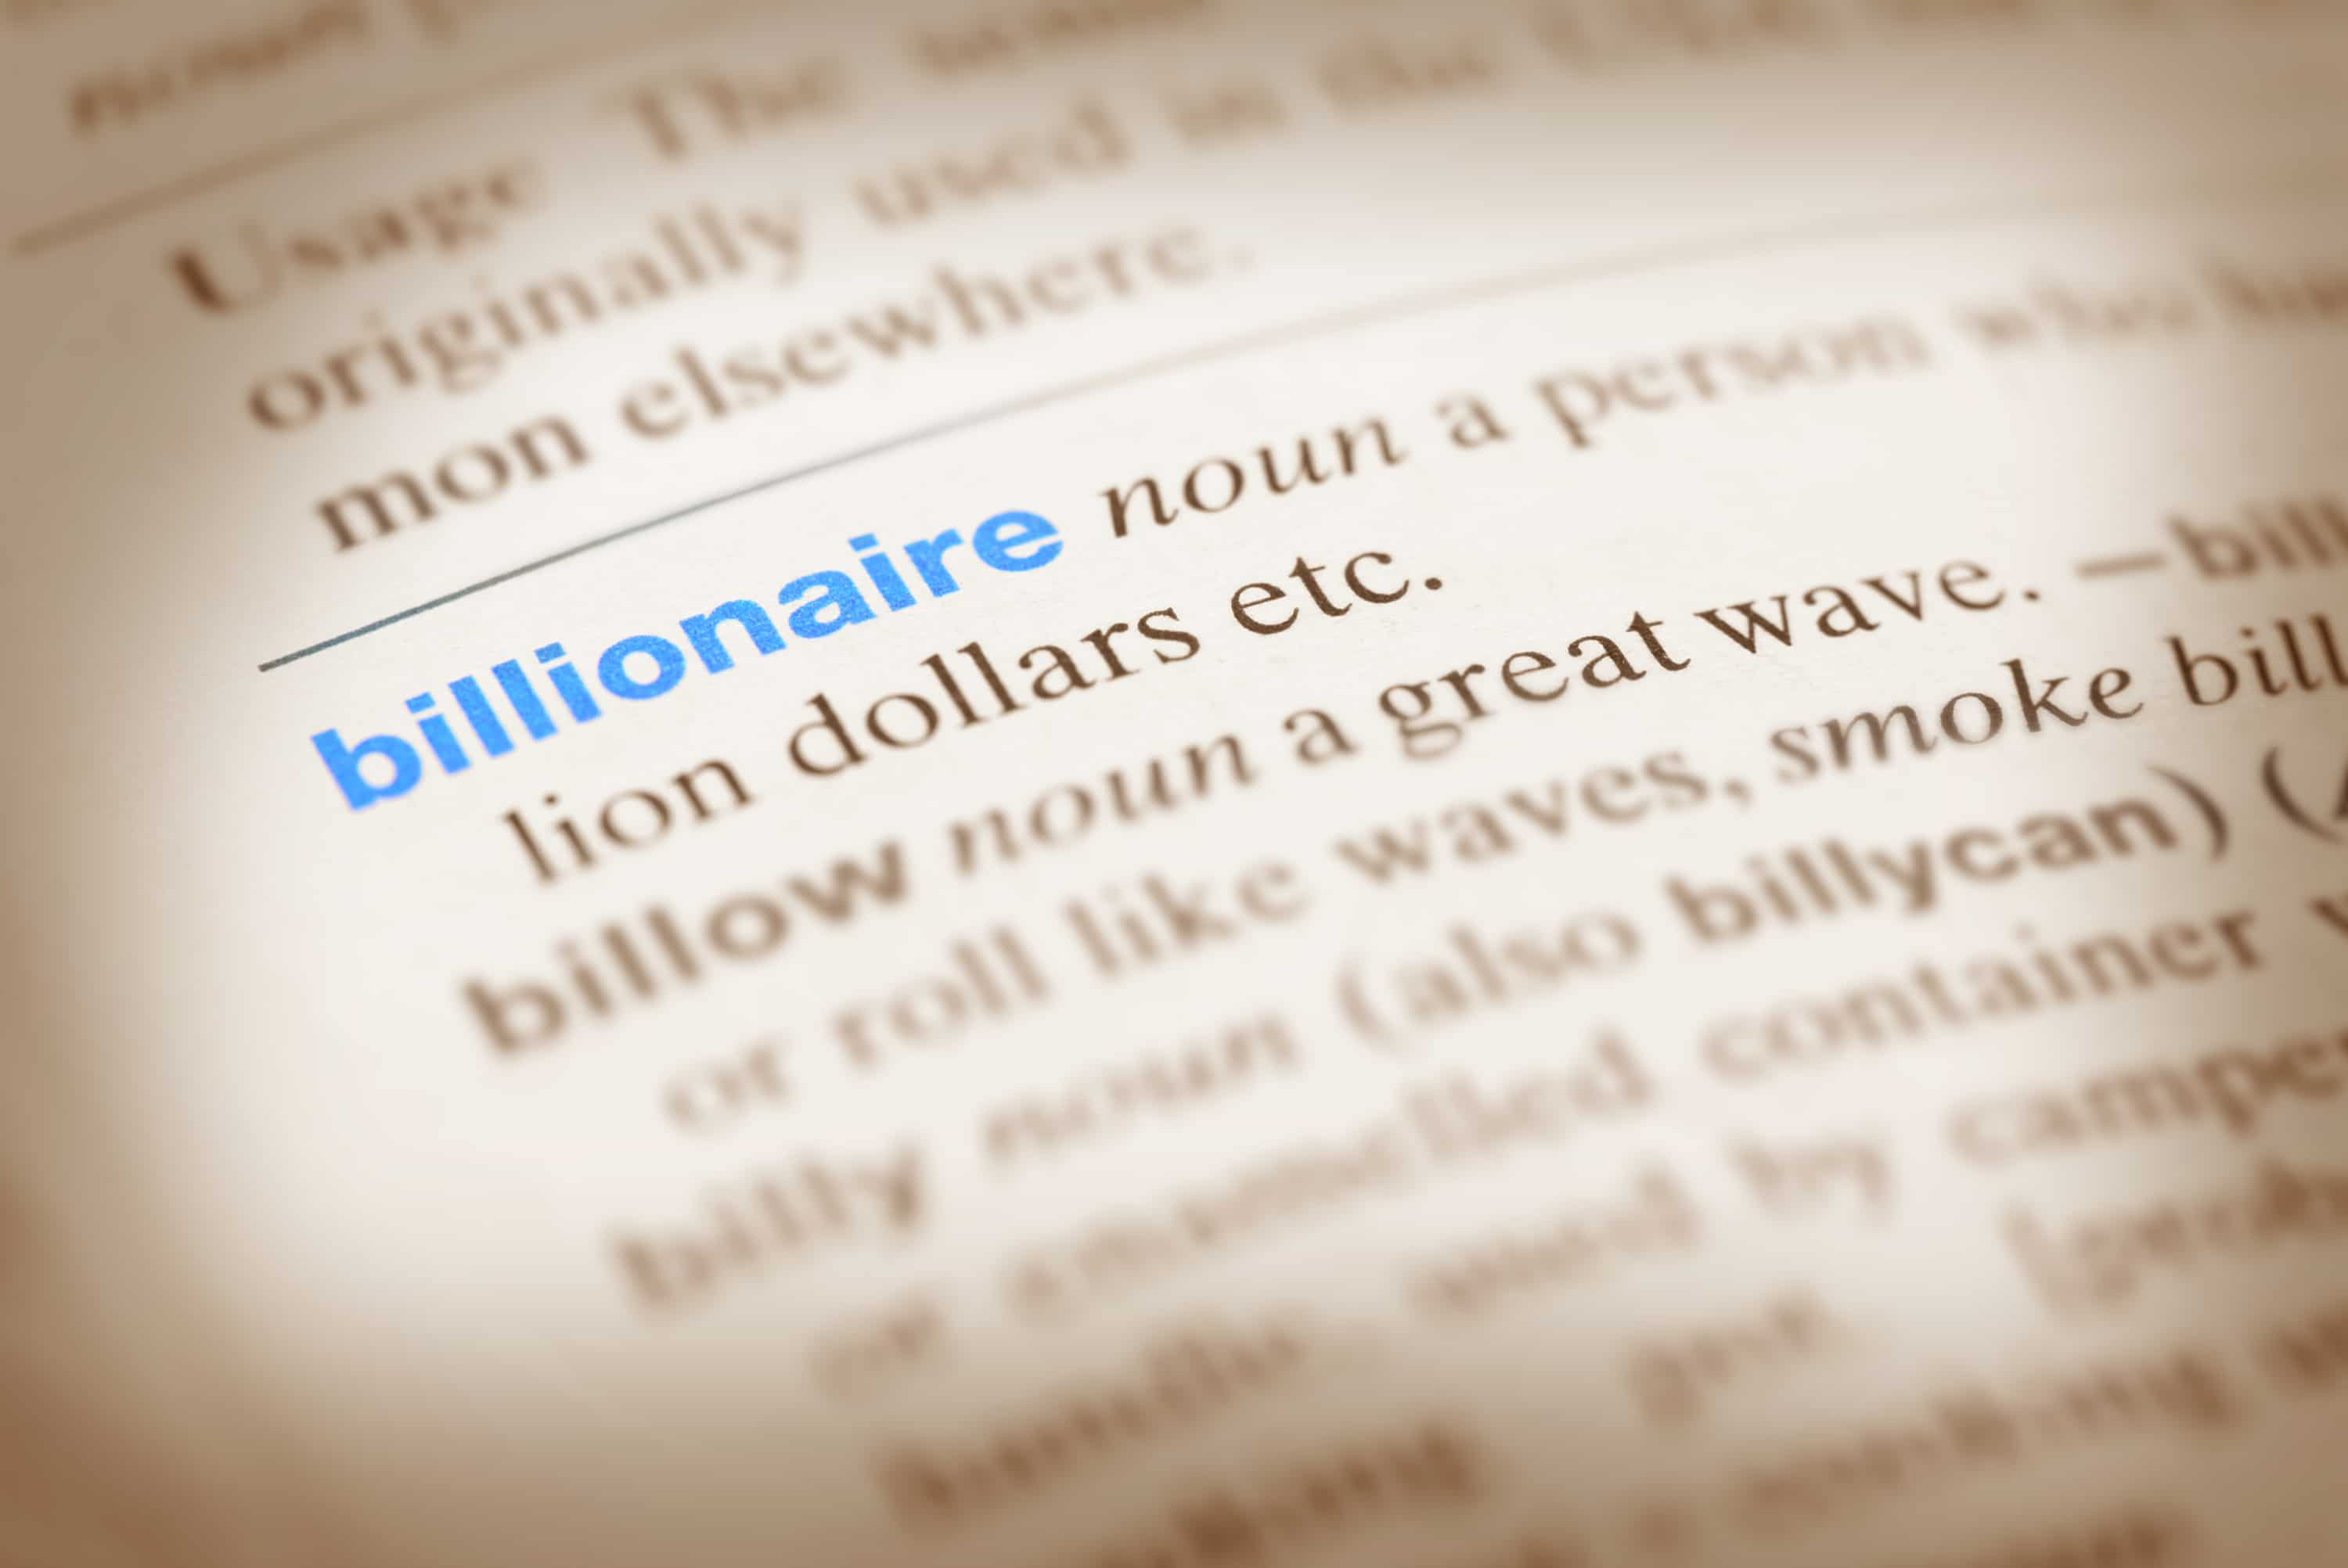 How to Become a Billionaire - 7 Characteristics of the Rich